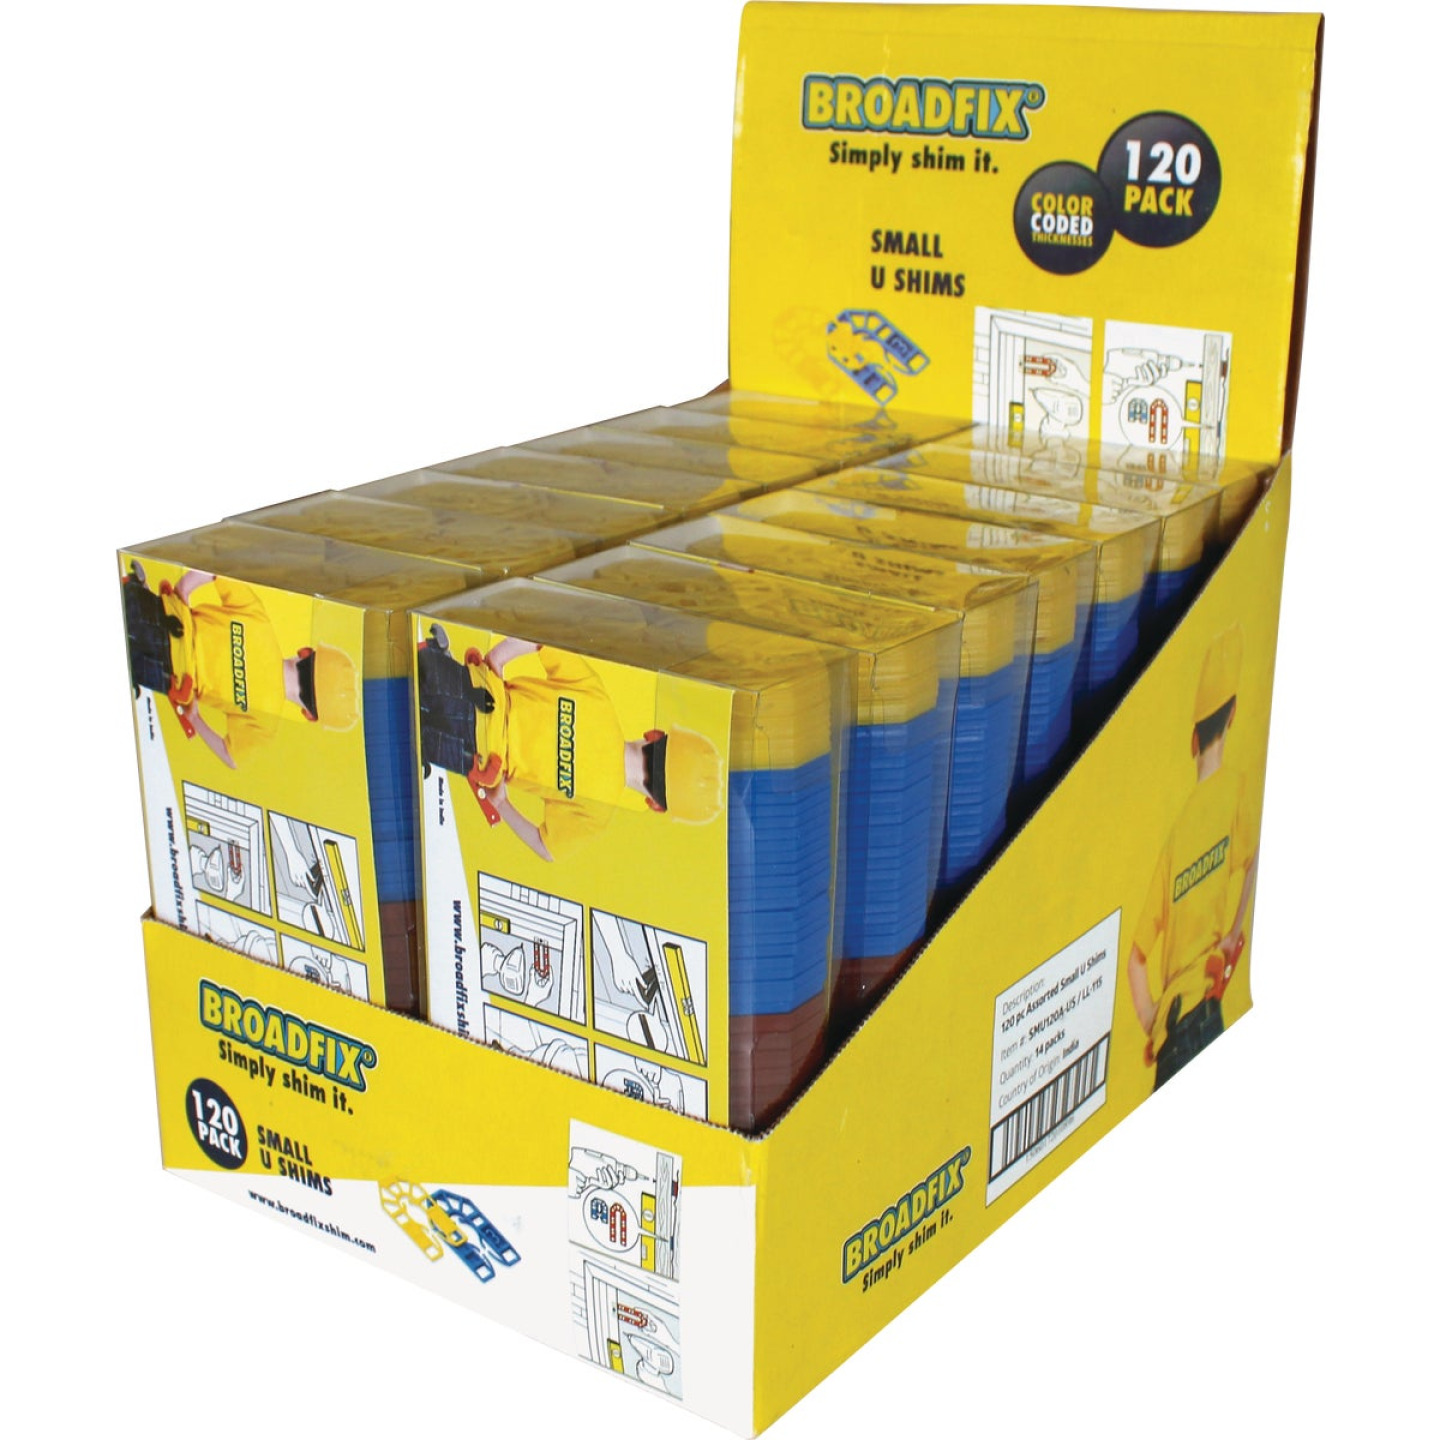 Broadfix 2-3/16 In. L Polypropylene Small U Shim, Assorted Thicknesses (120-Count) Image 1